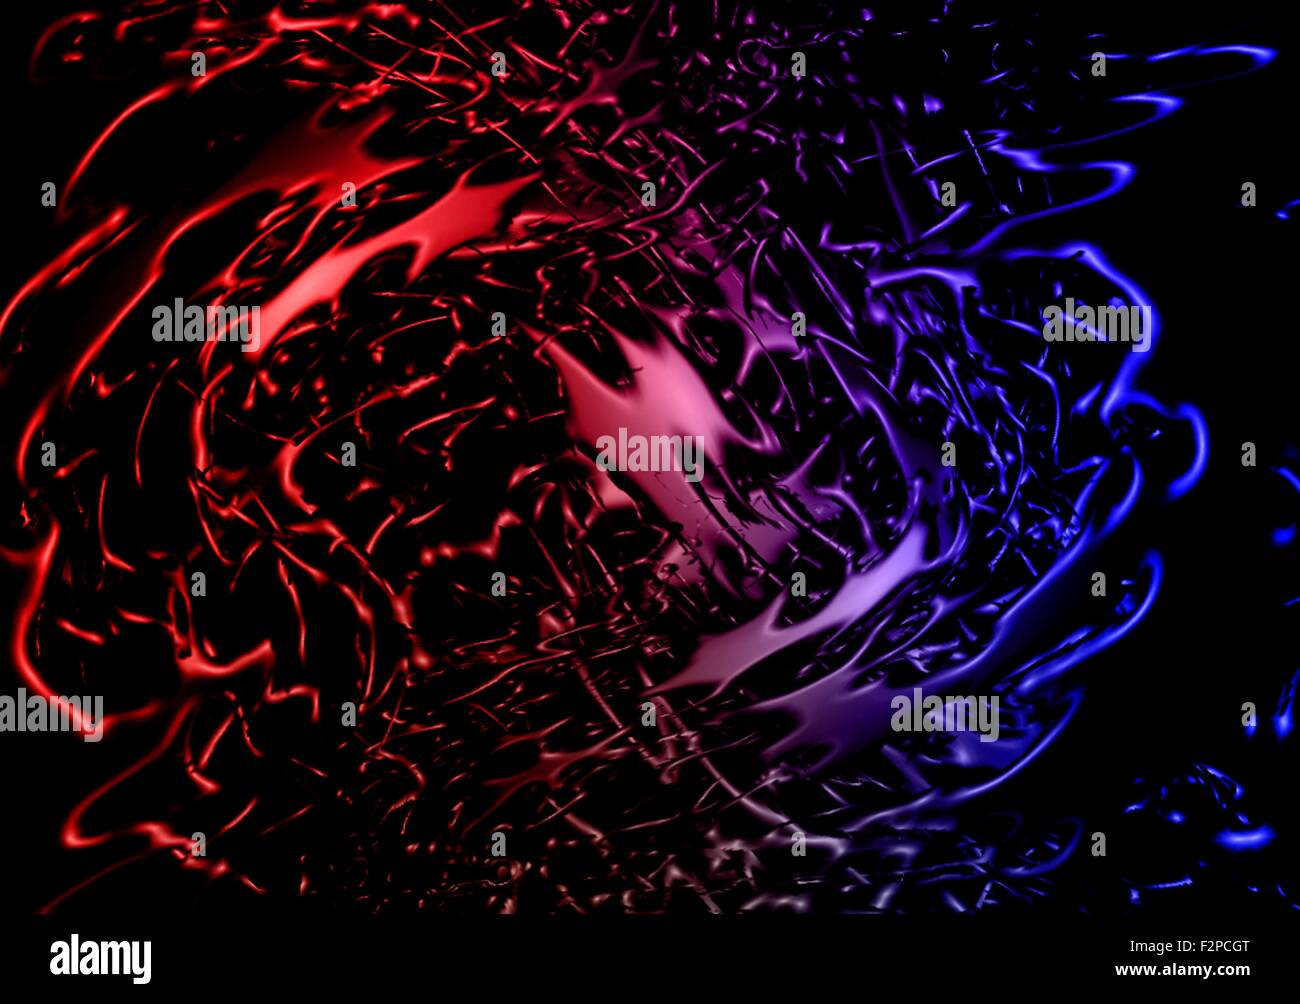 Image Of Abstract Colorful Splash 3d Background Medical Wallpaper With Blobs Explosion Color Blots Fight In Abyss